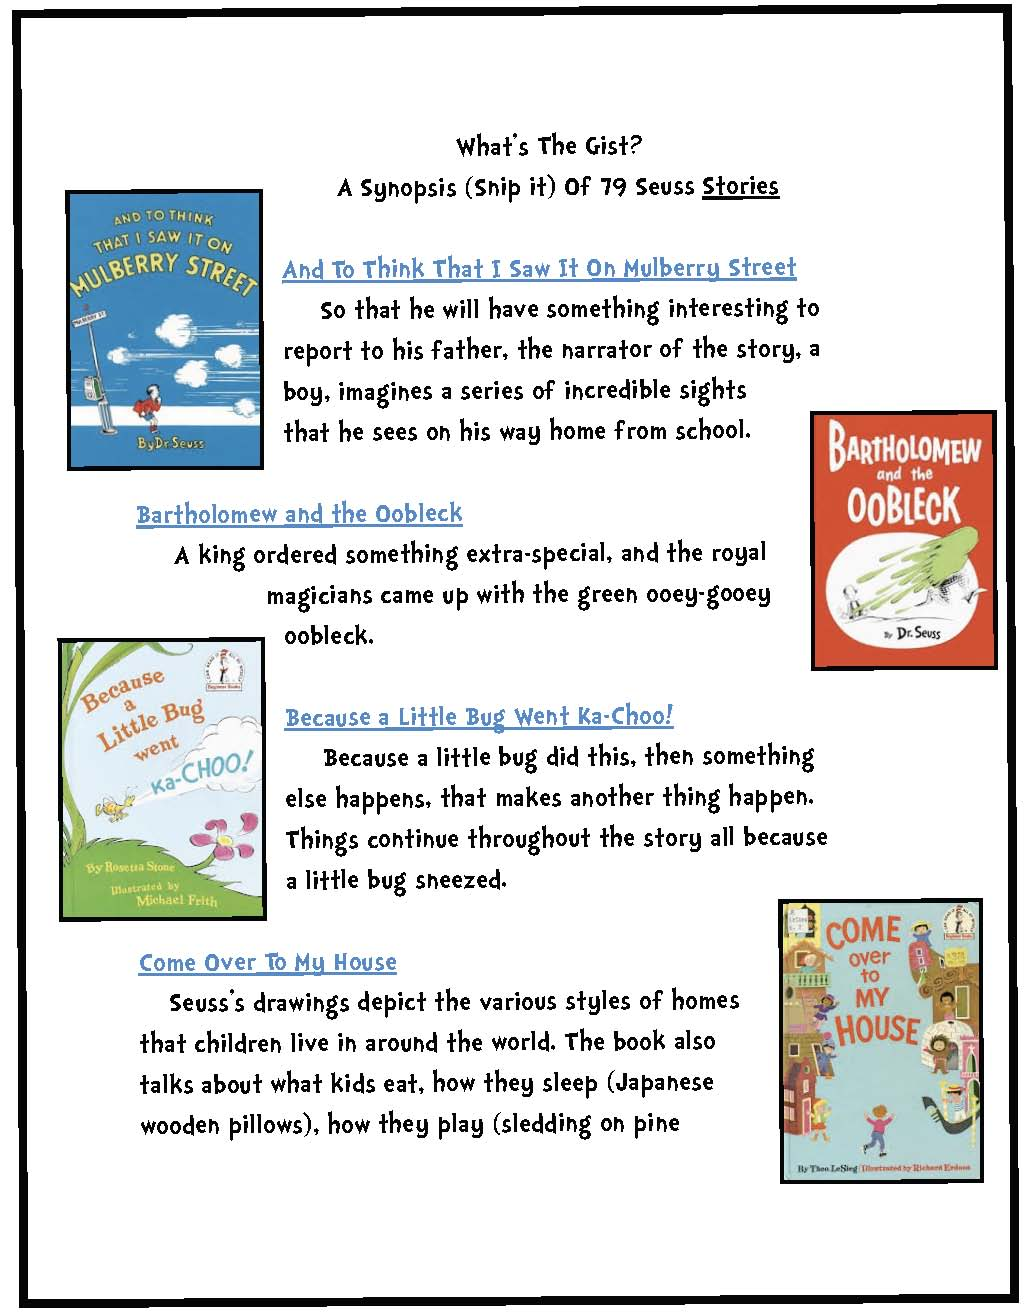 a synopsis of all Dr. Seuss books & stories